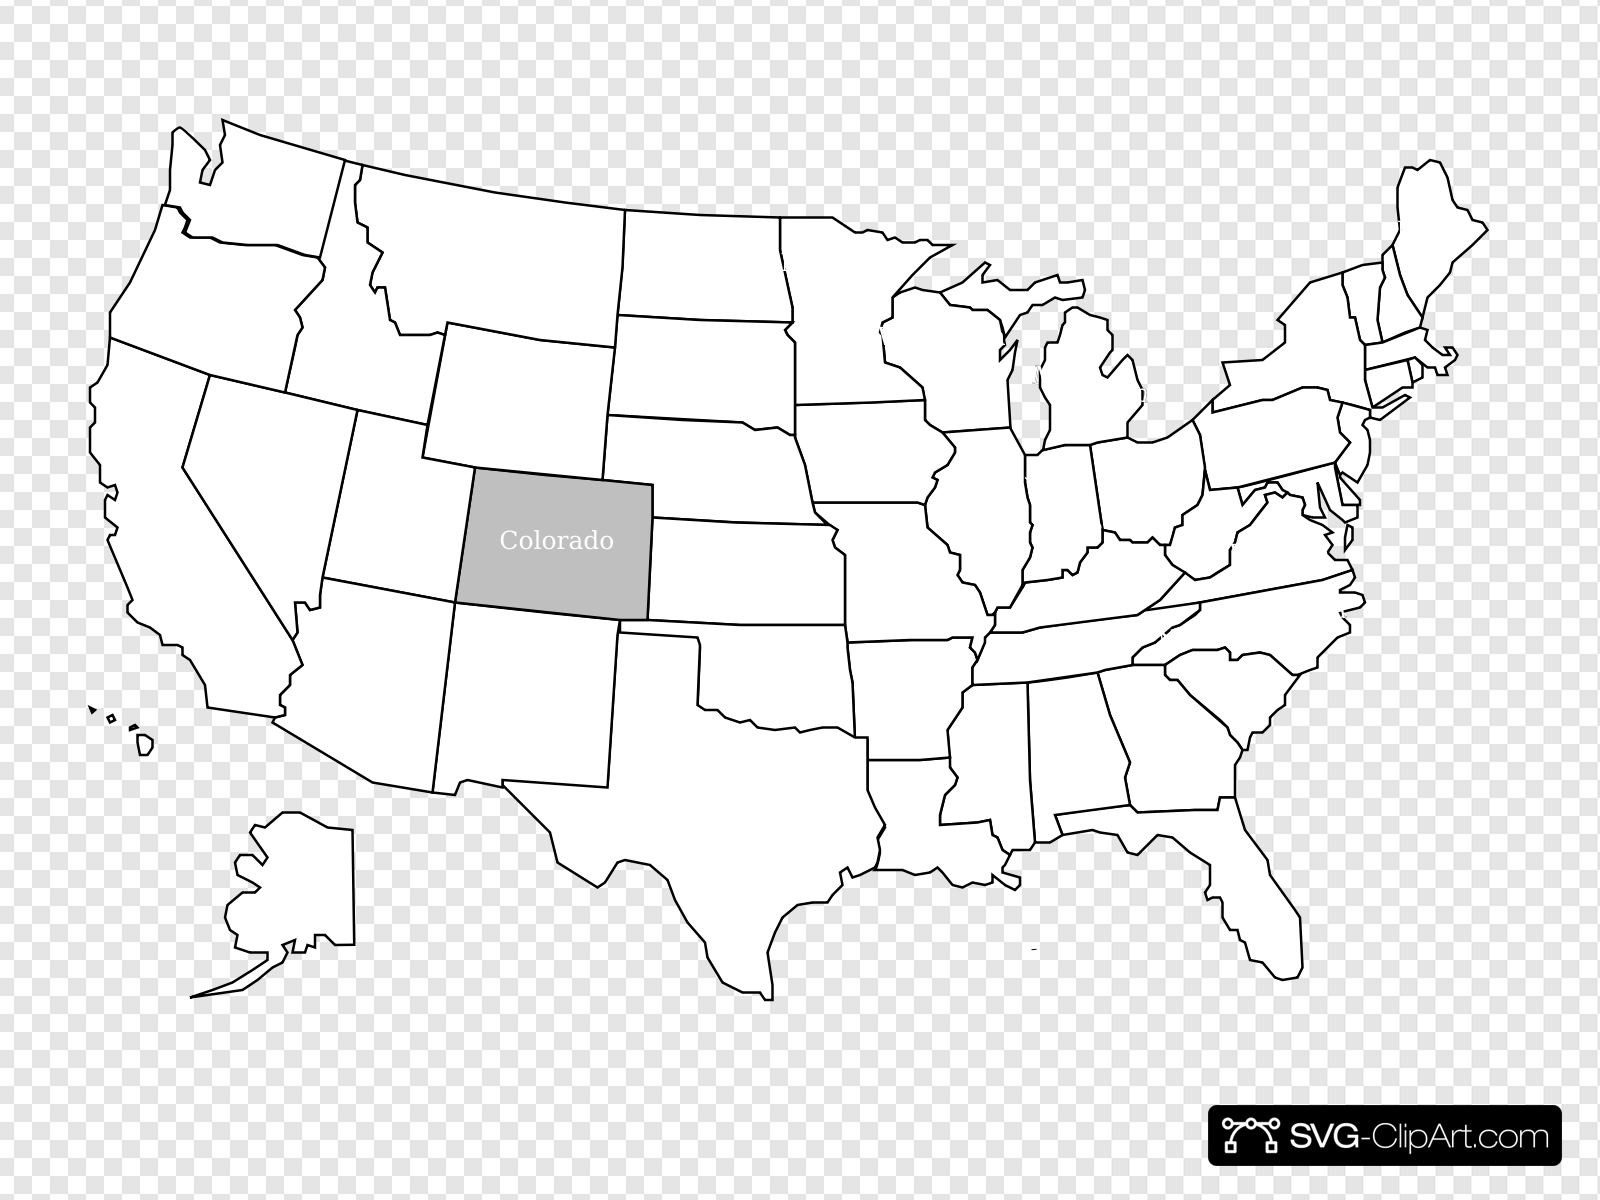 Colorado state clipart svg black and white stock United States Map With Colorado Highlighted Clip art, Icon and SVG ... svg black and white stock